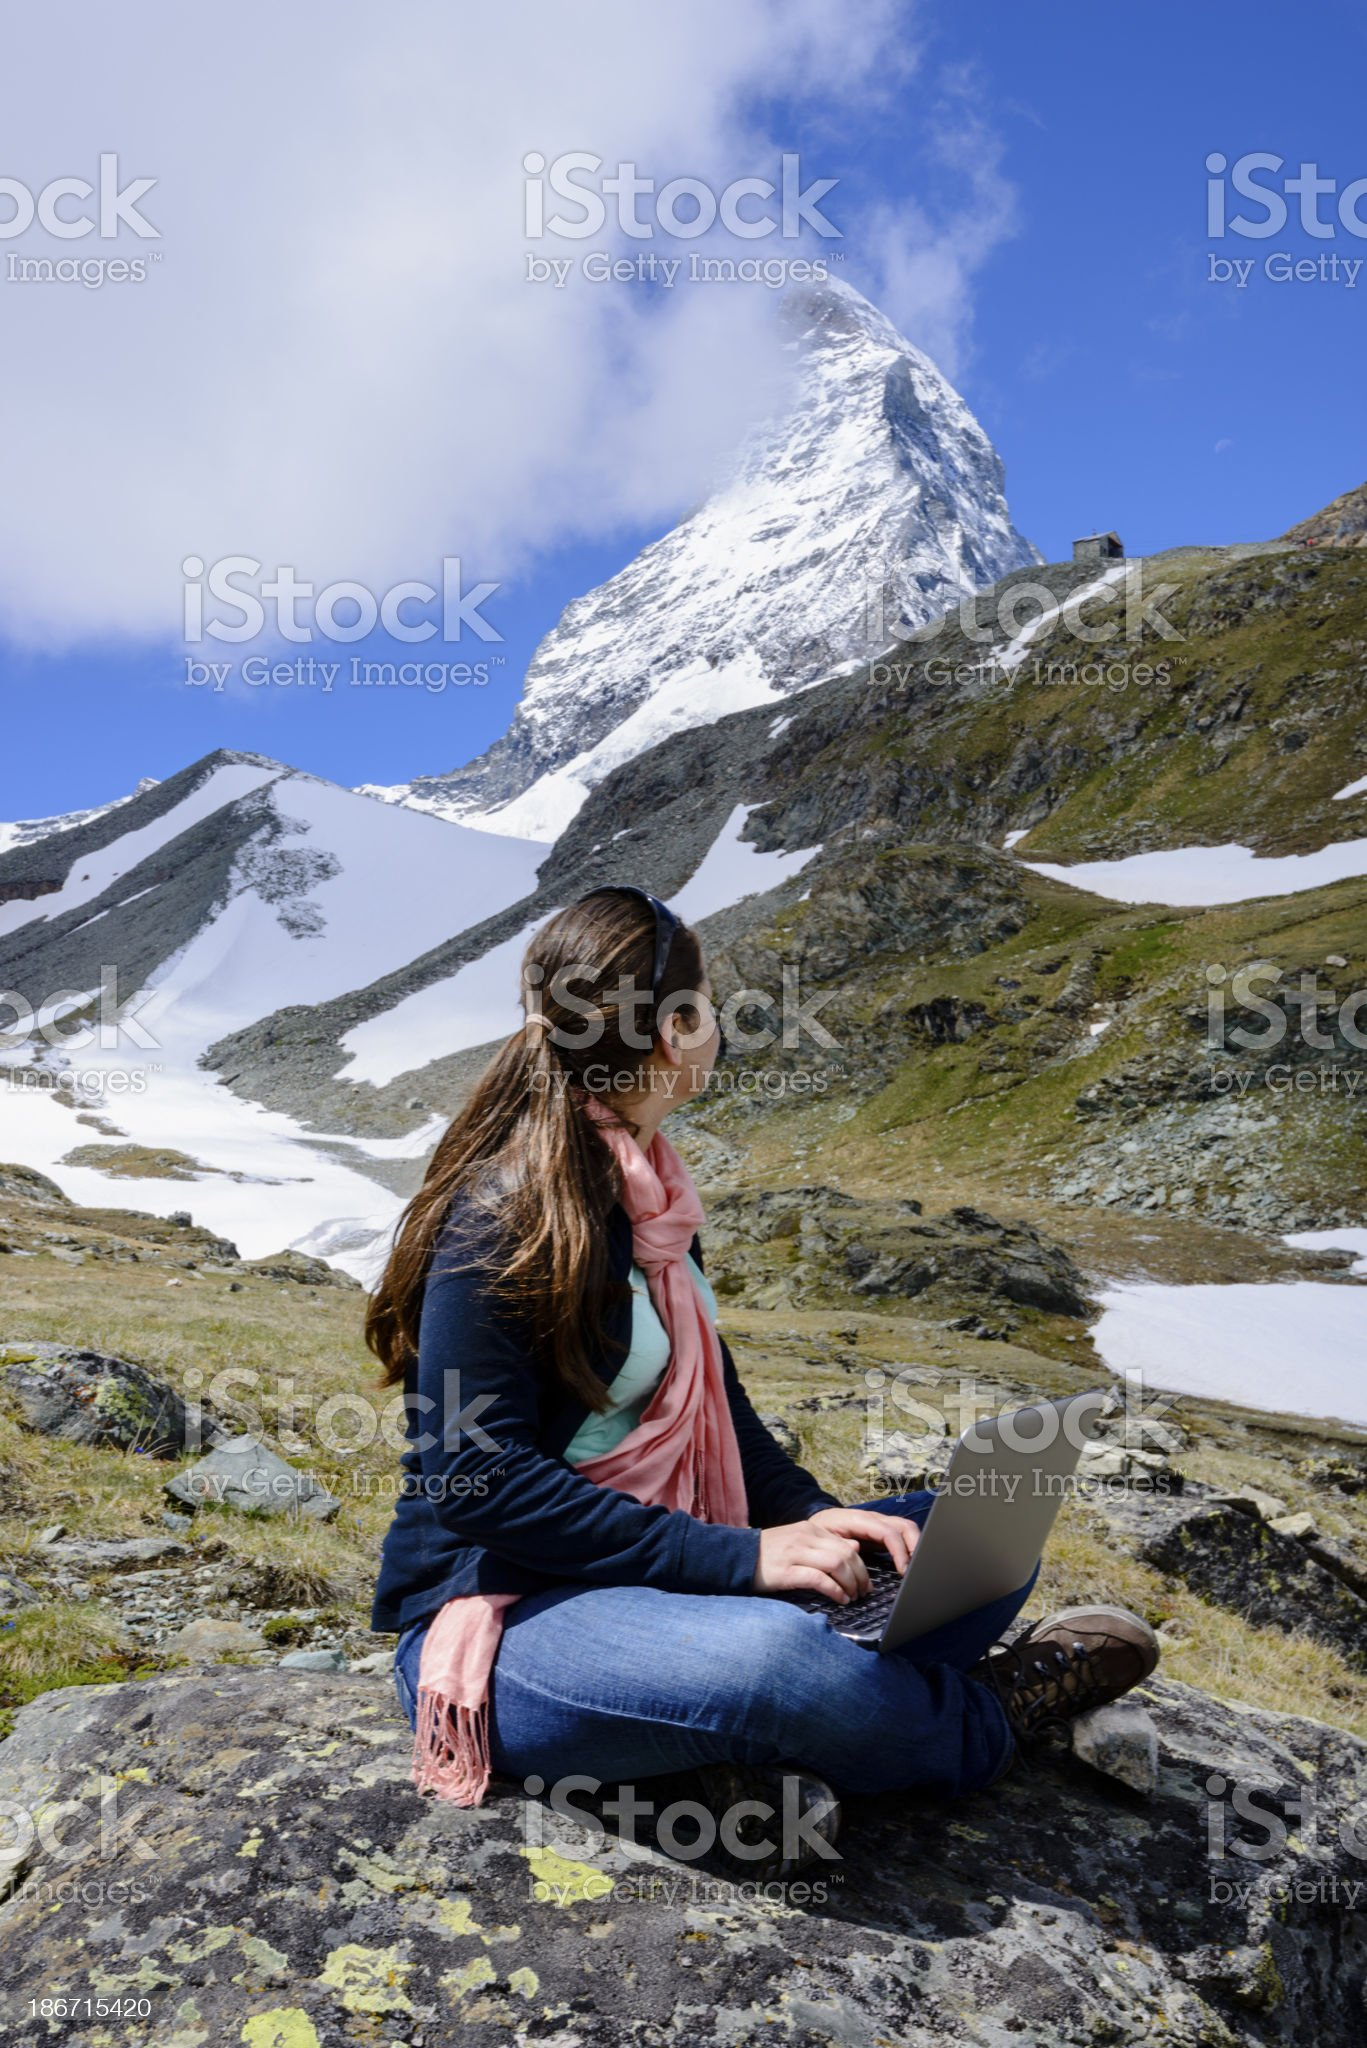 Young woman using social media in the mountains -XXXL royalty-free stock photo